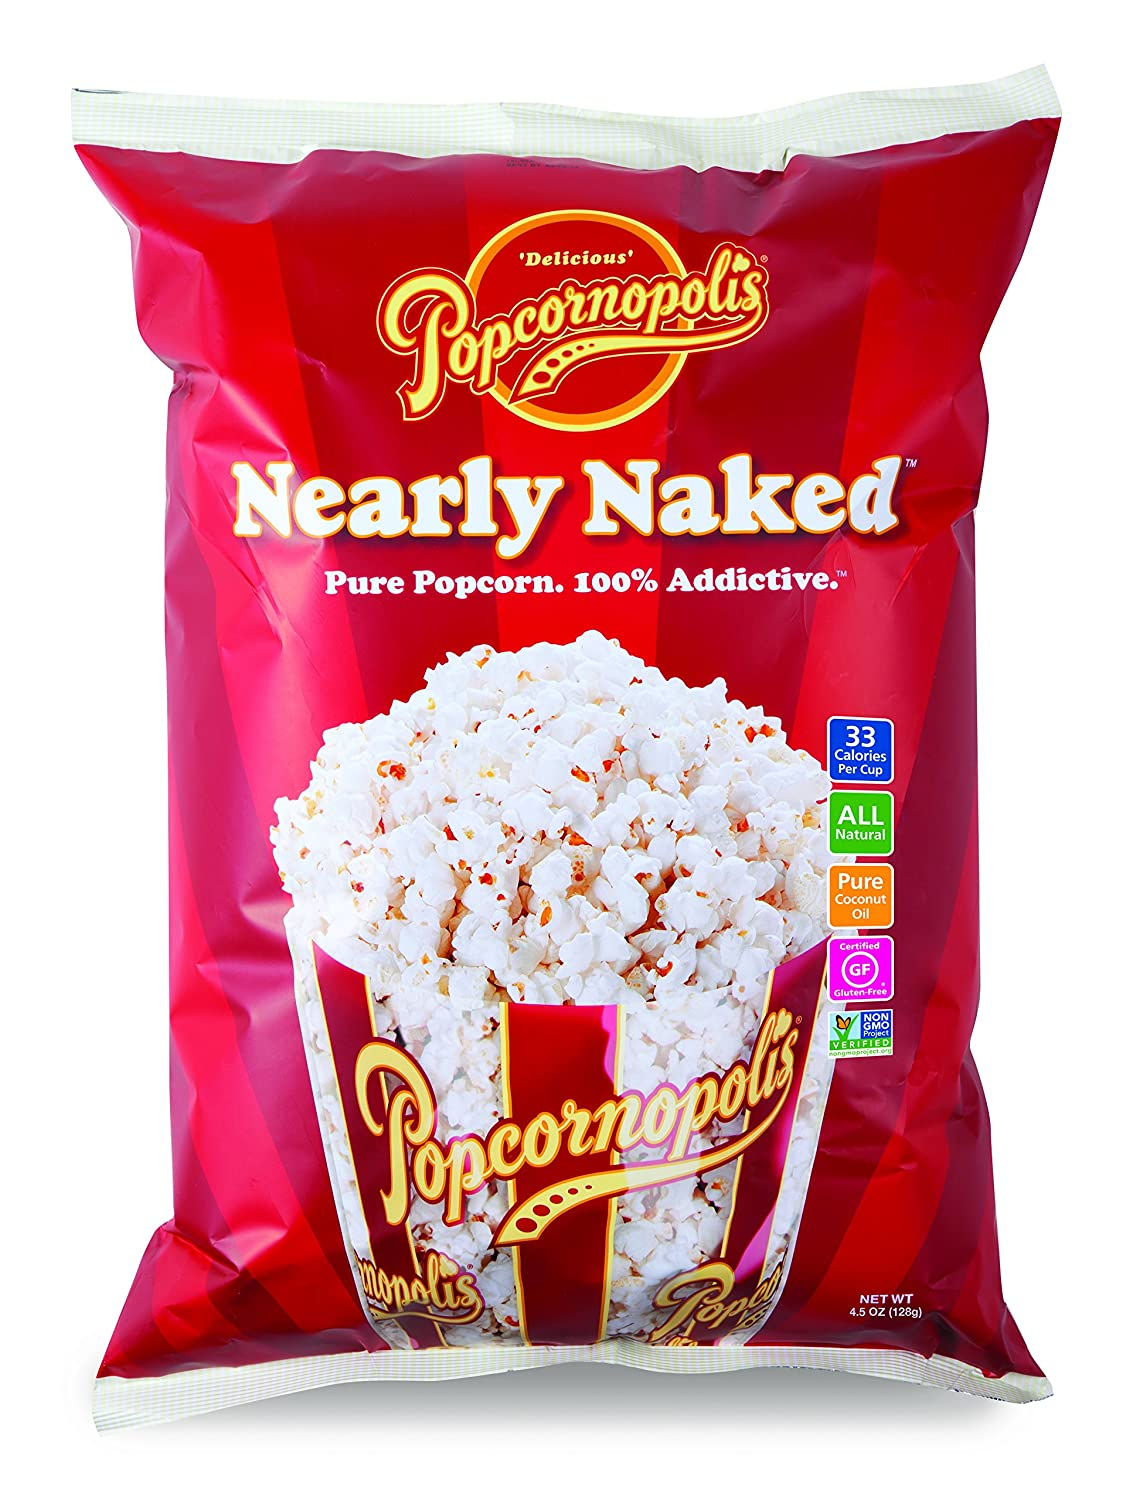 Popcornopolis Nearly Naked Gourmet Popcorn 4.5 8 Pack Dealing full price reduction of Ounce Genuine Free Shipping